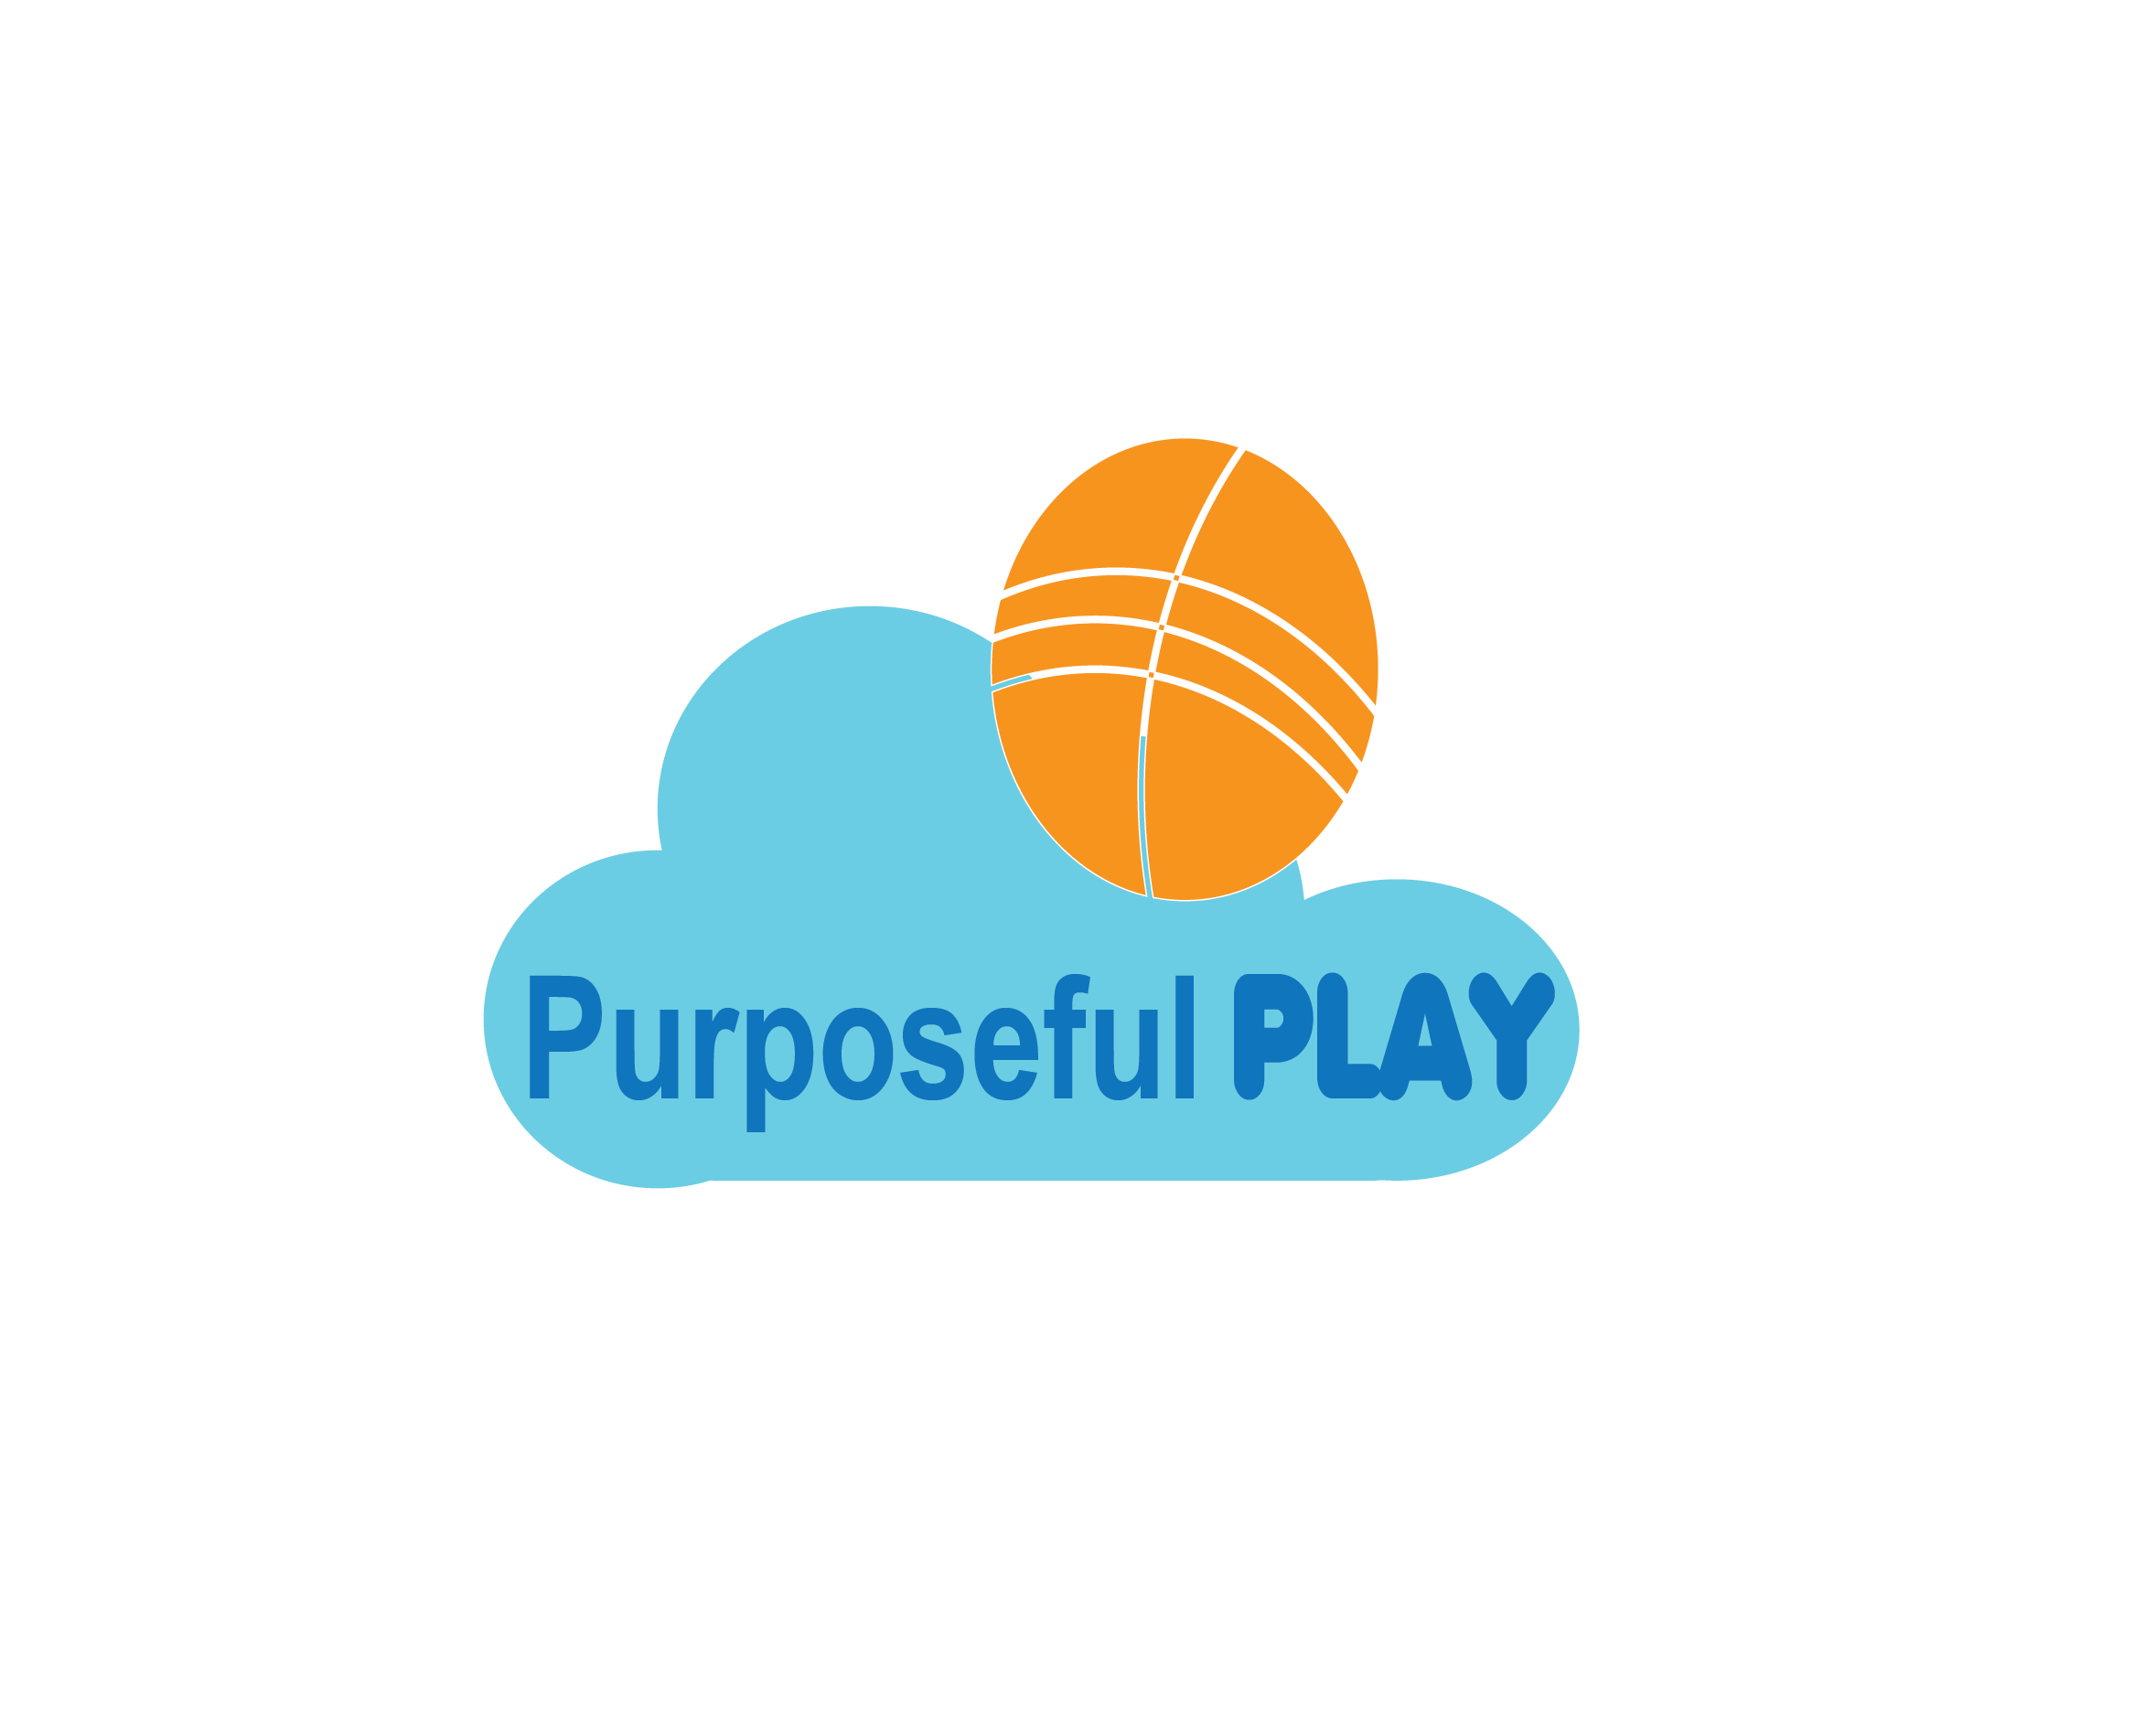 Logo Design by aanygraphic - Entry No. 36 in the Logo Design Contest Purposeful PLAY Logo Design.